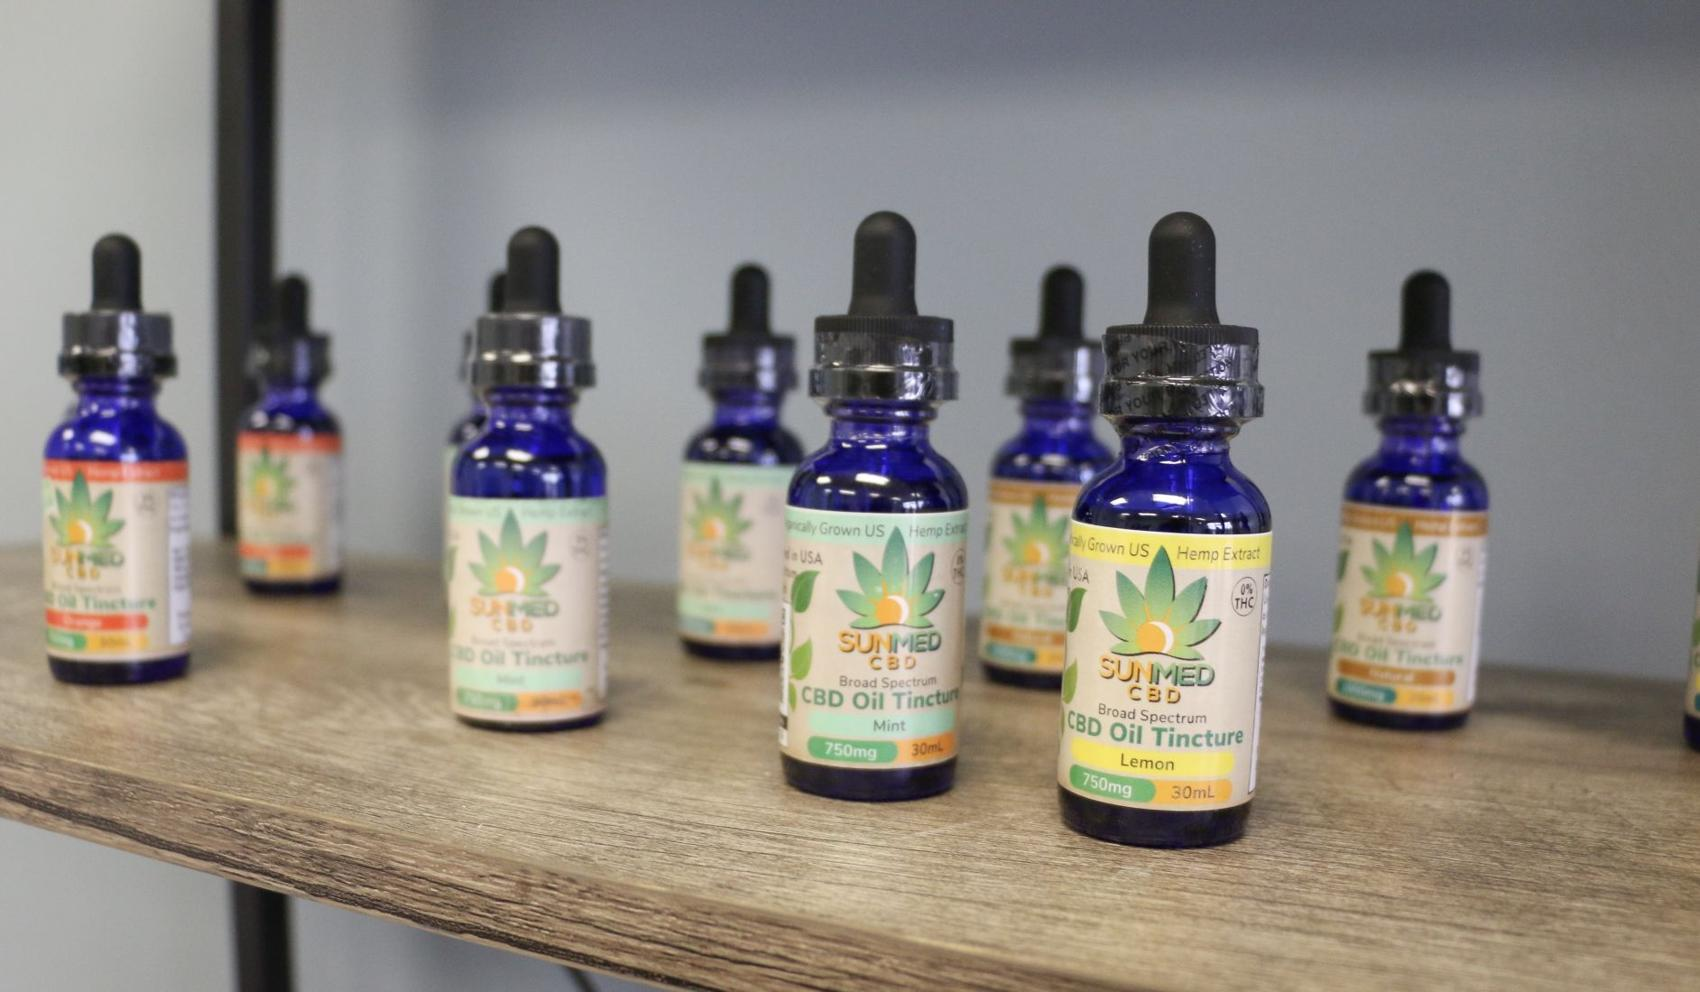 Your CBD Store - Cannabidiol store opens in Ashland